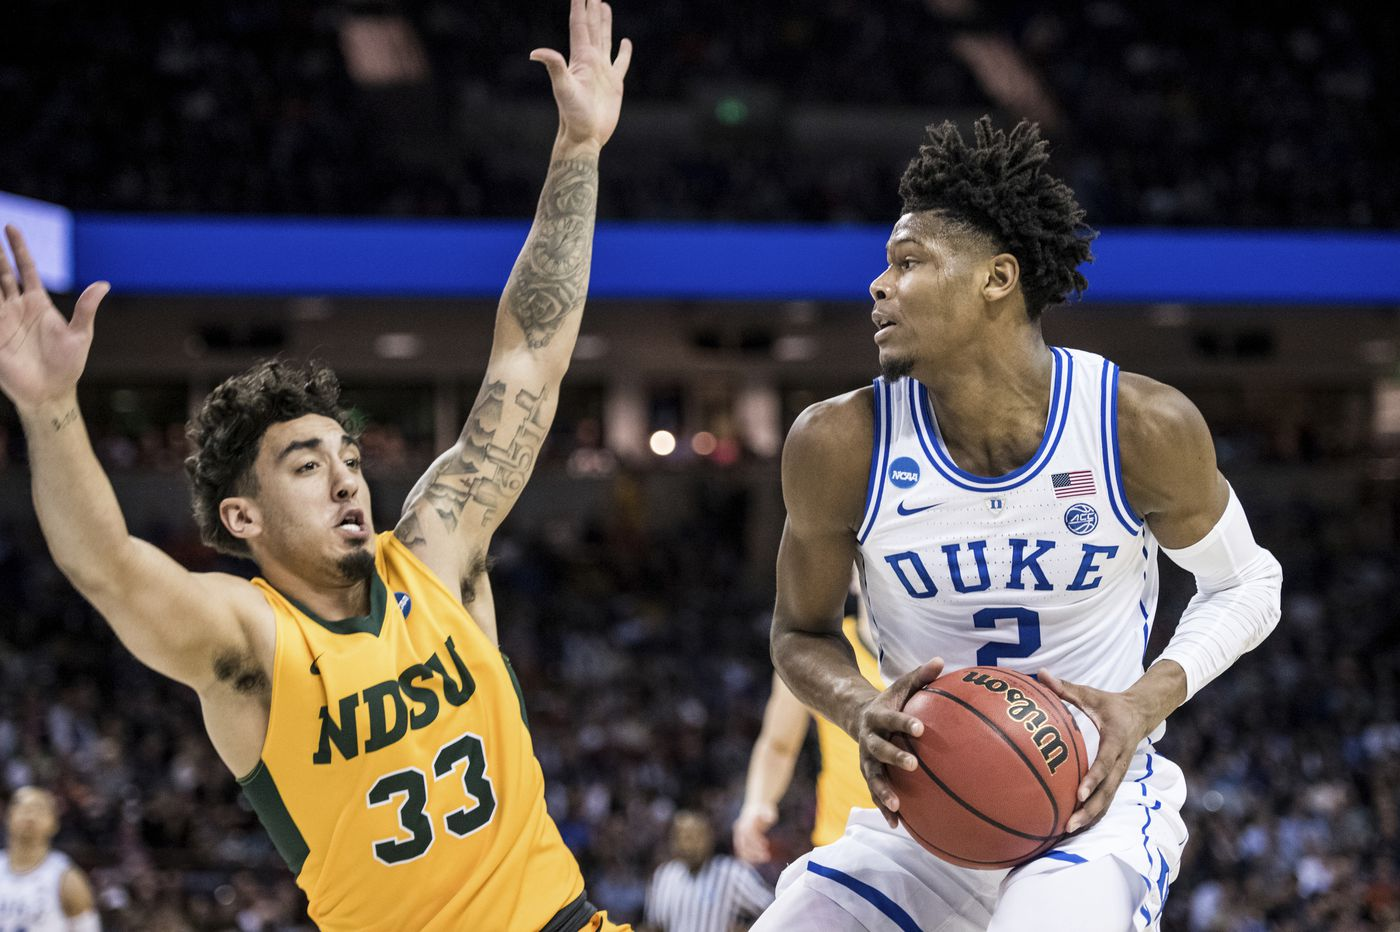 NBA Draft combine: Duke's Cam Reddish, a Norristown native, has a chip on his shoulder